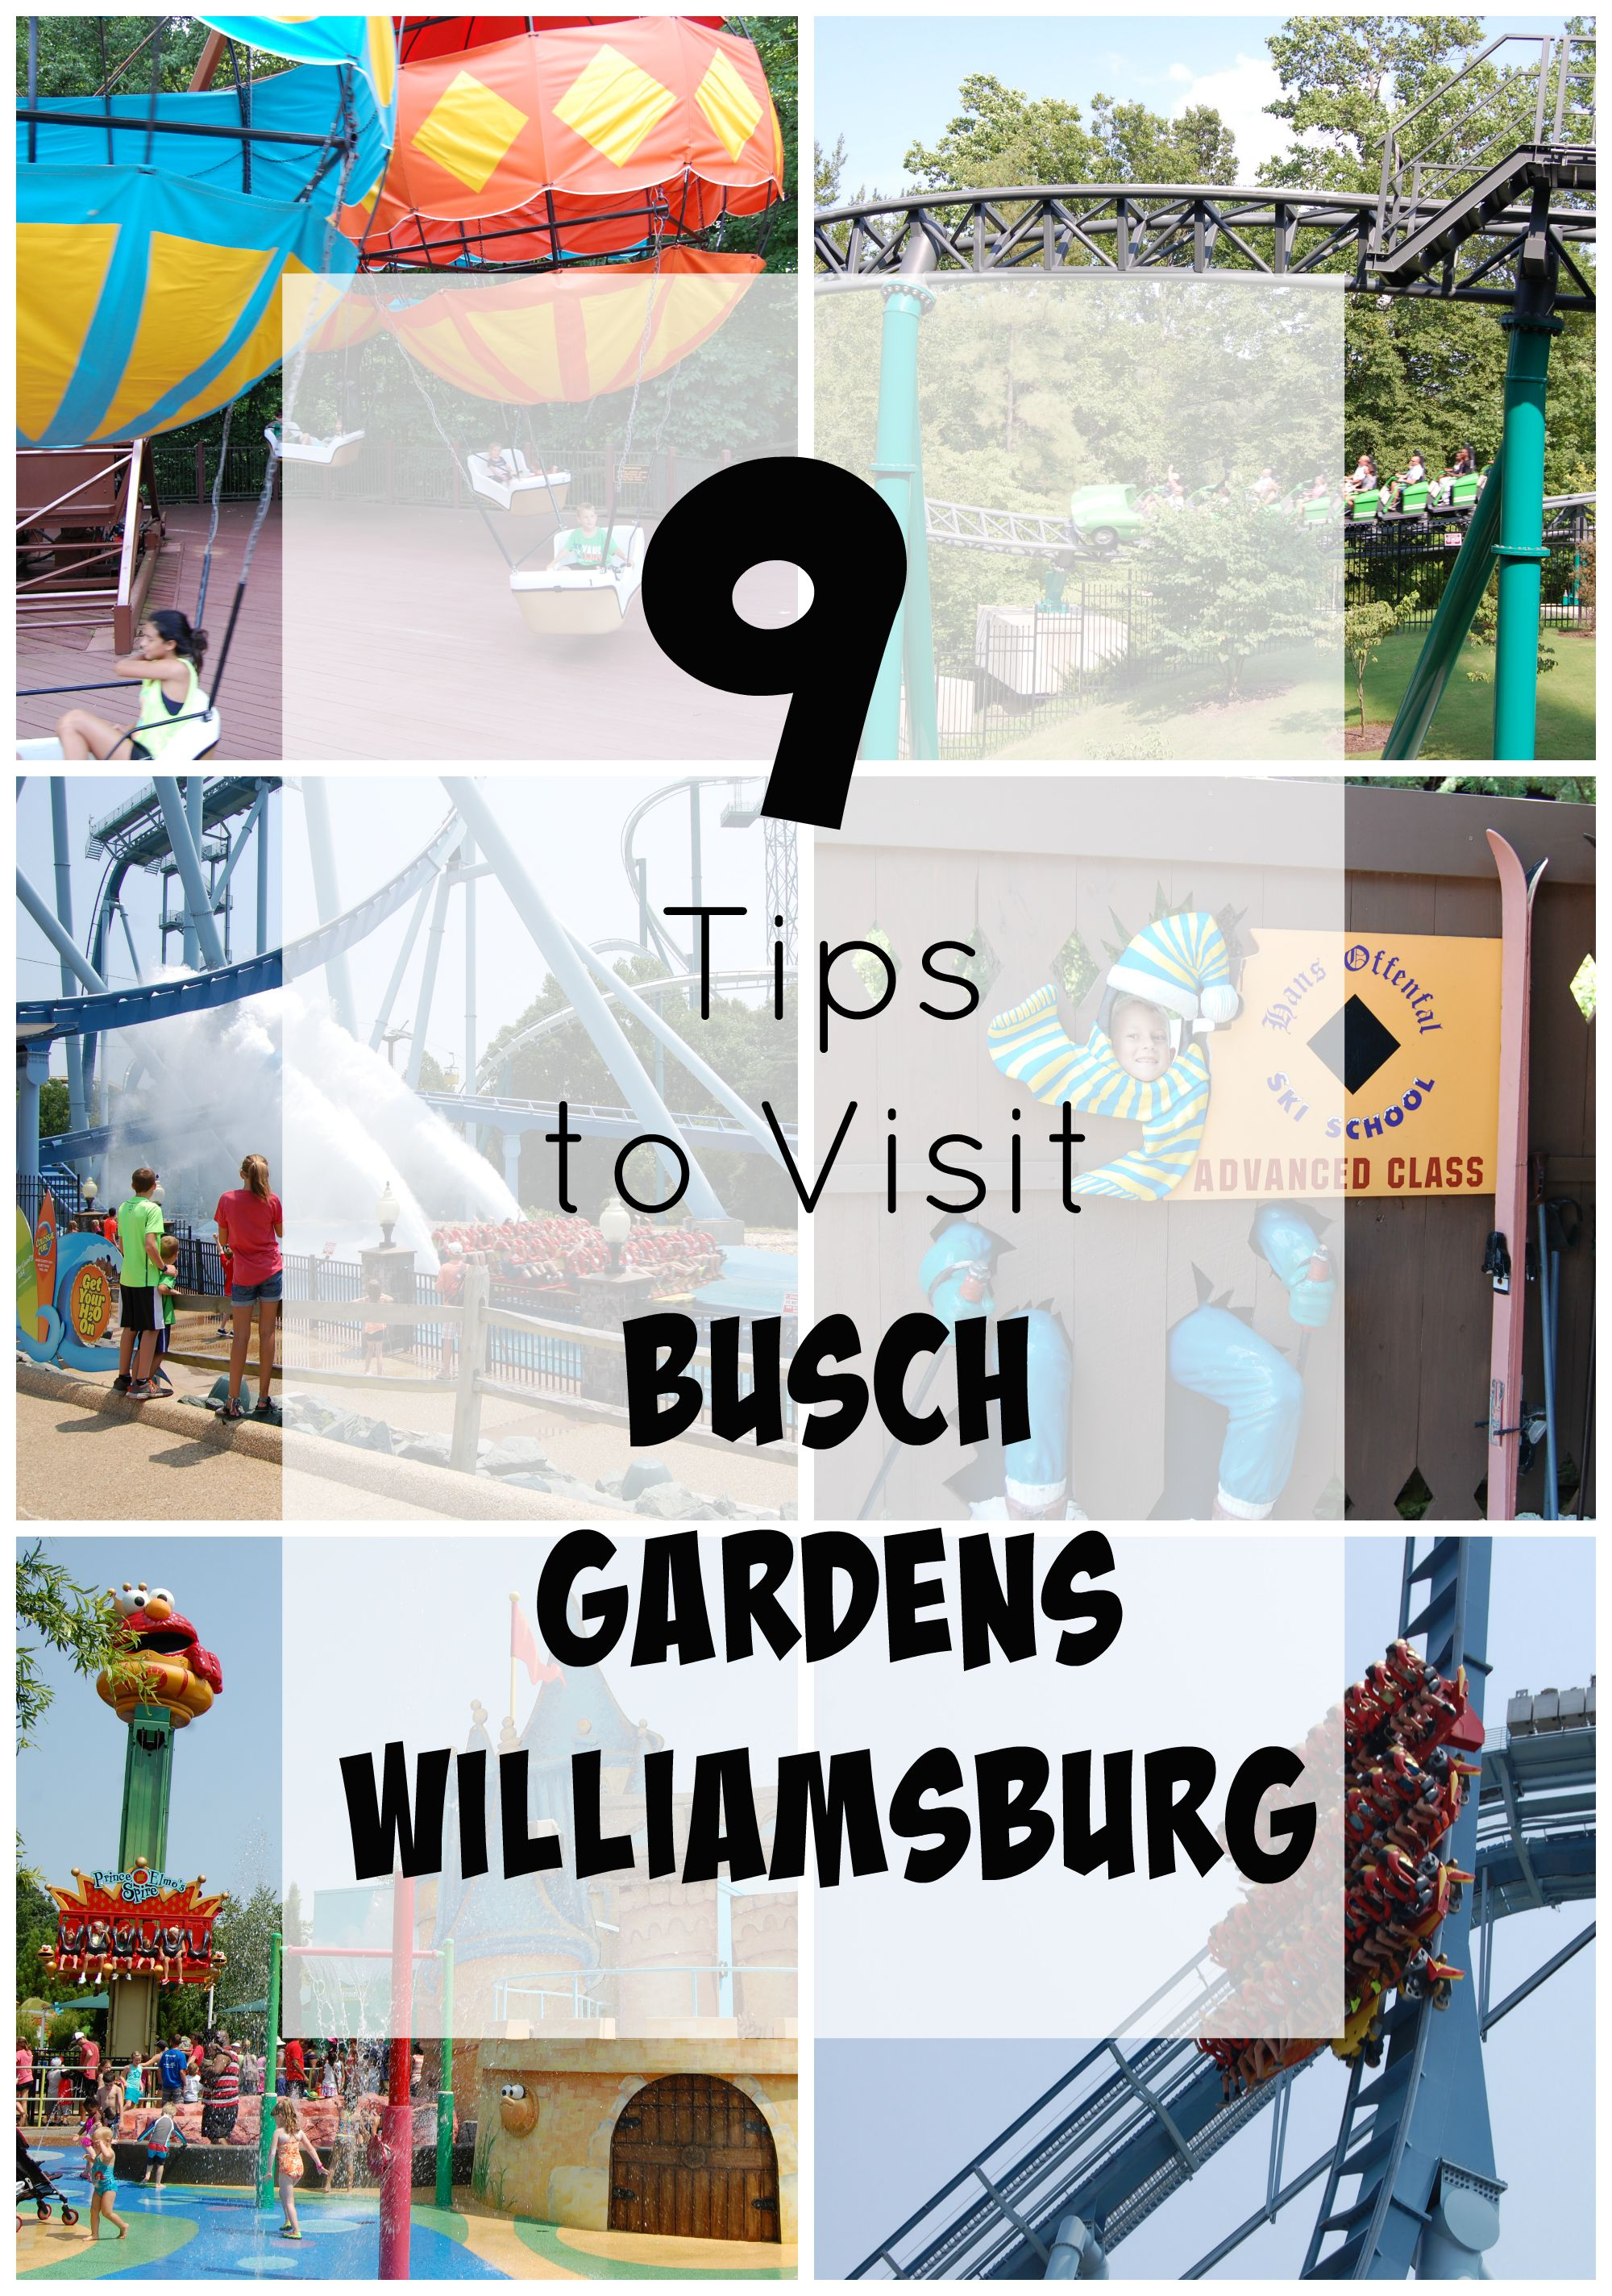 Wyndham garden williamsburg busch gardens area williamsburg busch gardens williamsburg busch Busch gardens pass member benefits